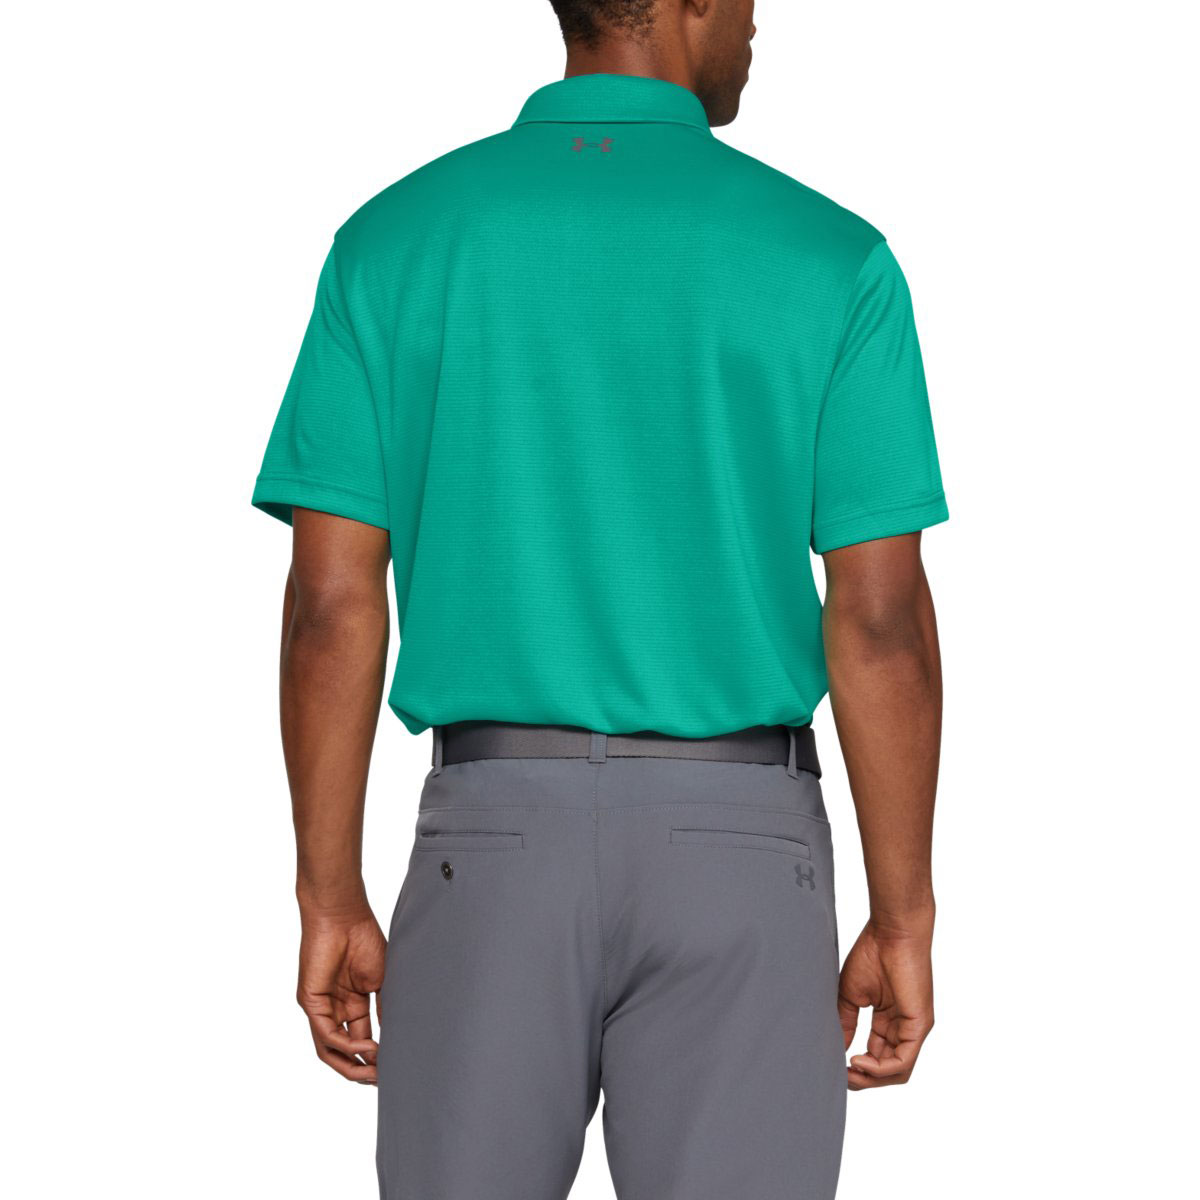 Under-Armour-Mens-Golf-Tech-Wicking-Textured-Soft-Light-Polo-Shirt thumbnail 35